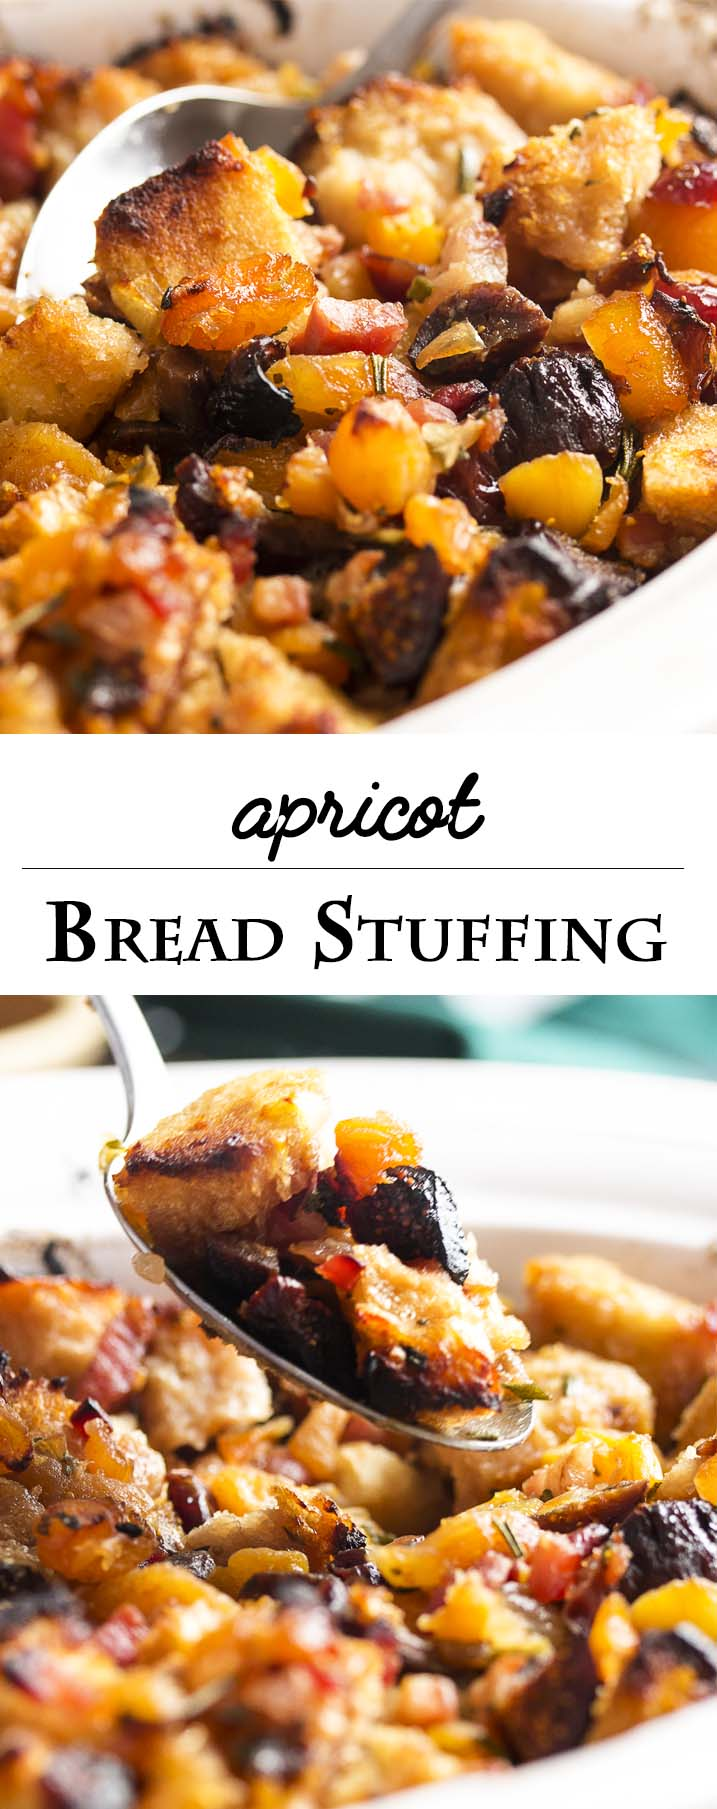 This stuffing is full of apricots, figs, and cranberries all tossed with sourdough bread cubes and flavored with pancetta and rosemary. A great accompaniment to roast pork! | justalittlebitofbacon.com